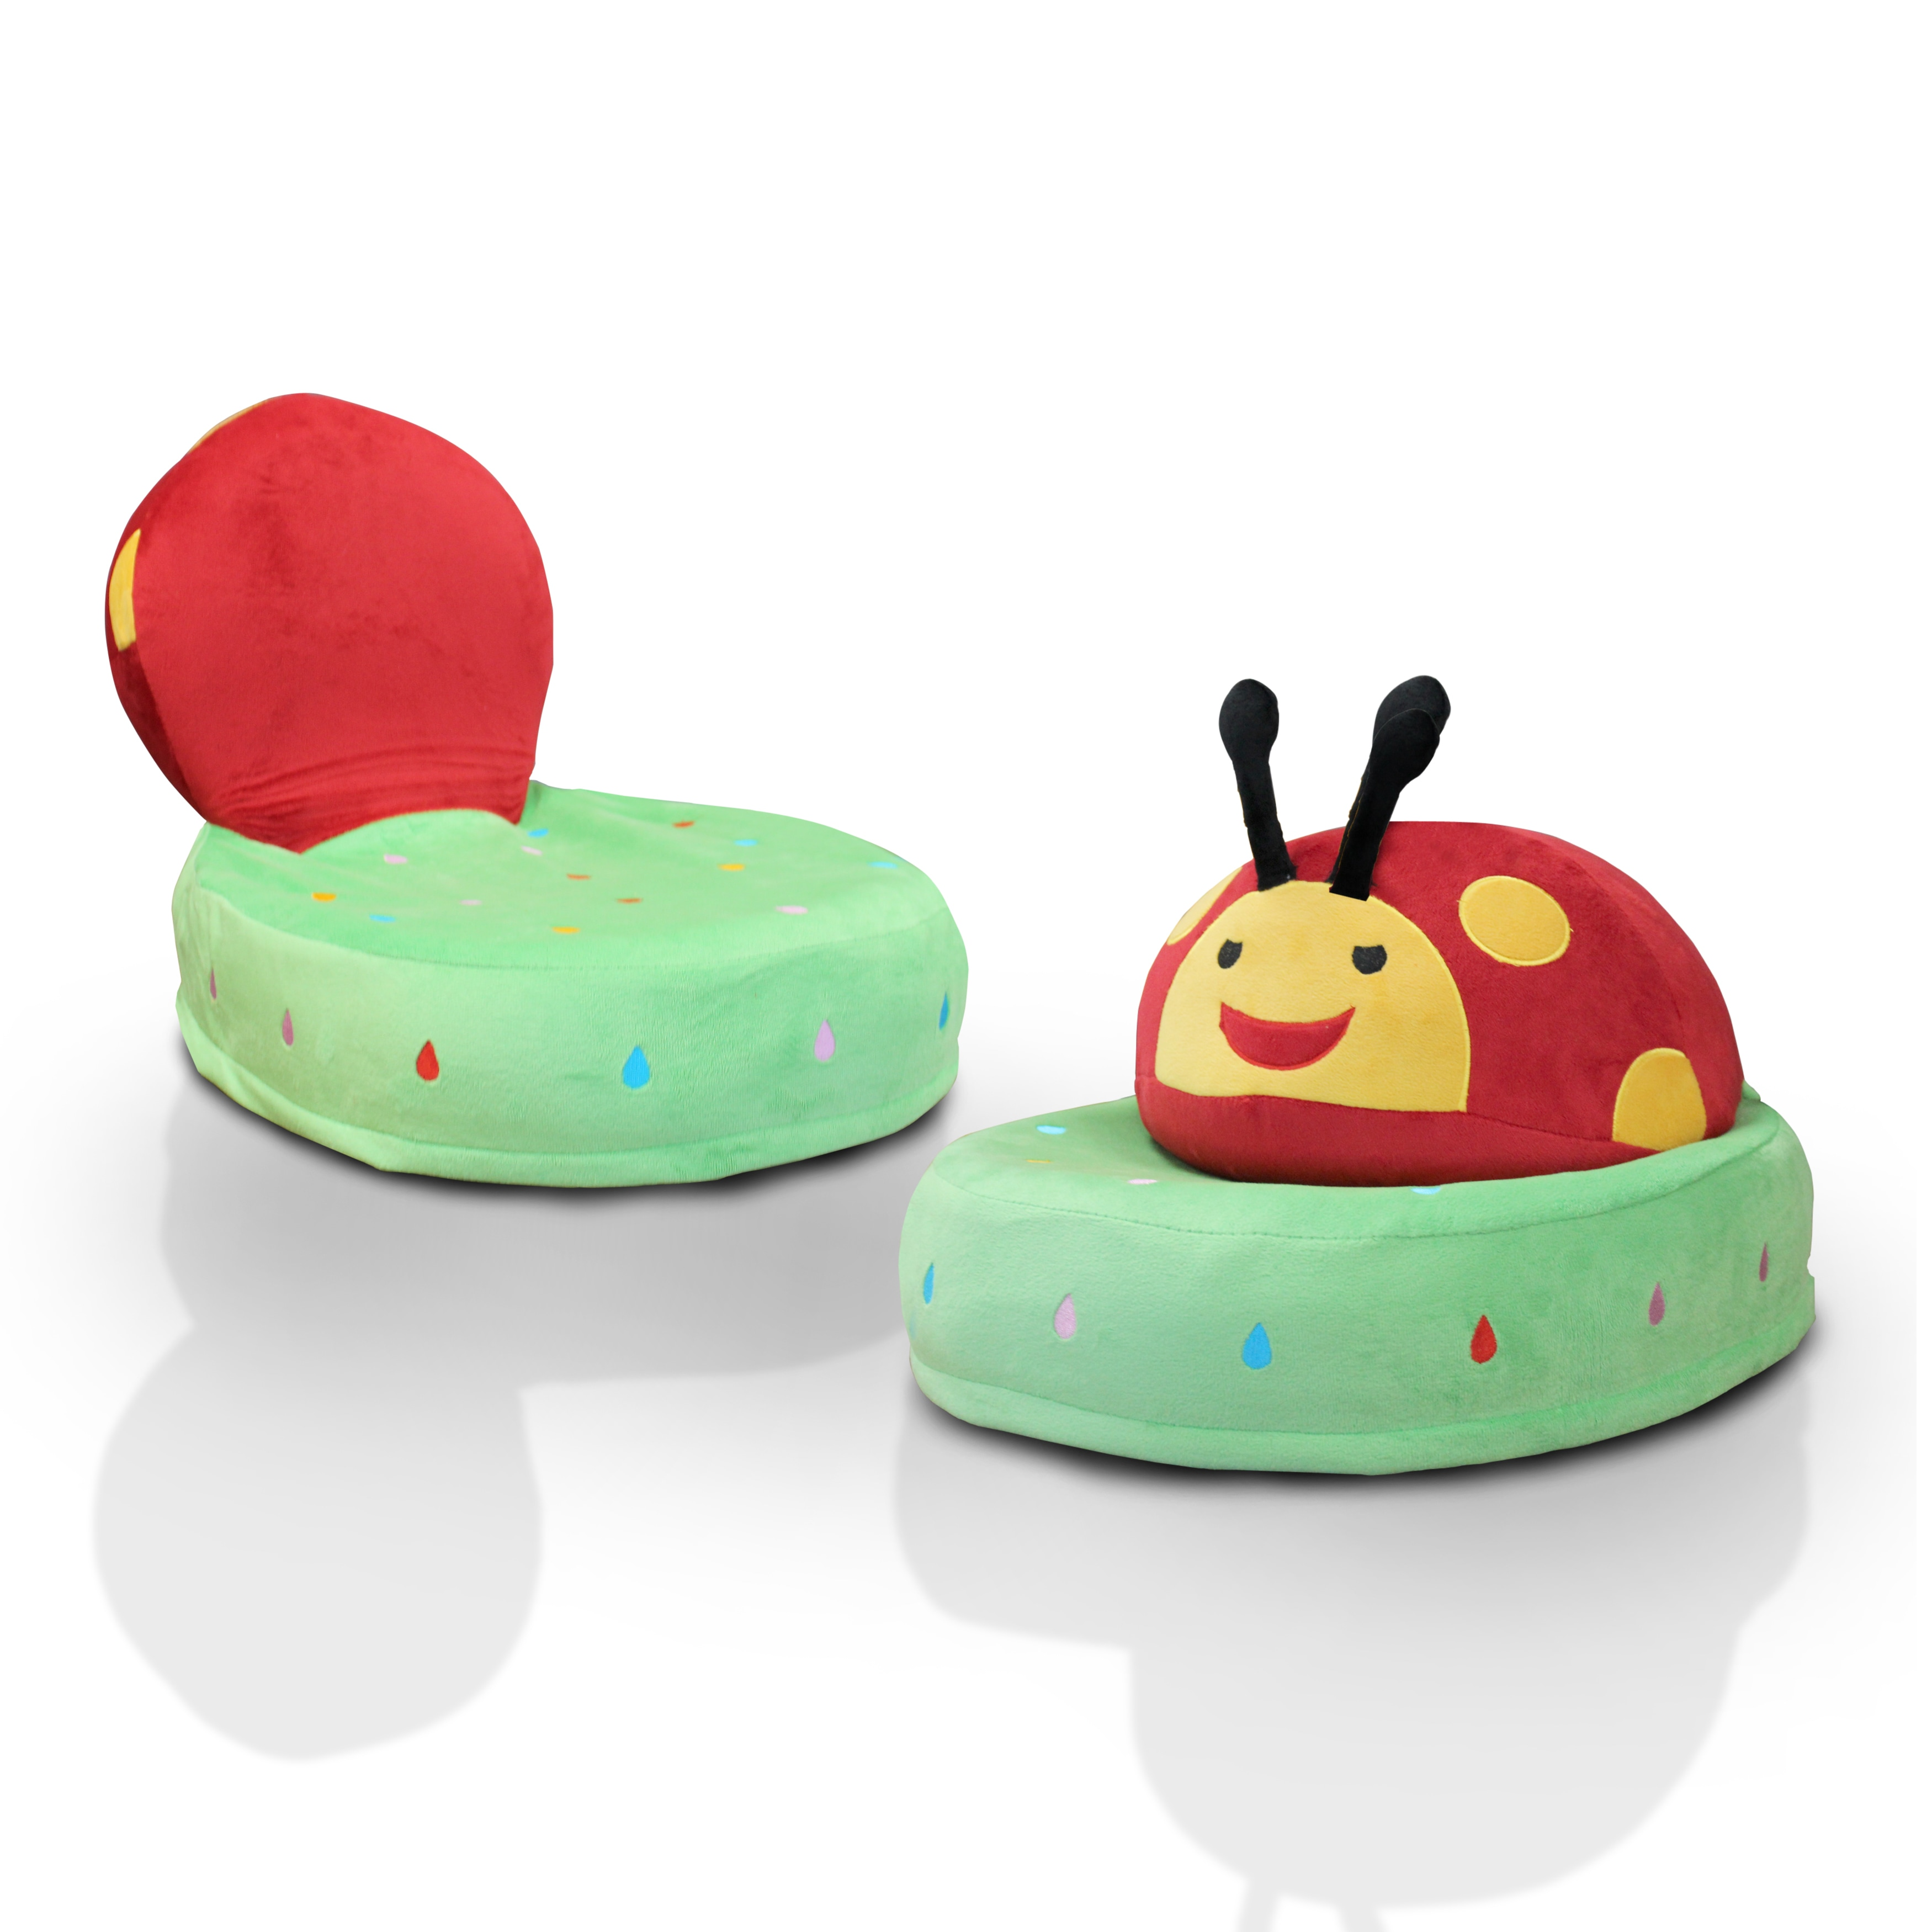 Furniture Of America Critter Crew Plush Microfiber Themed Folding Kids Chair    Free Shipping Today   Overstock.com   19355534